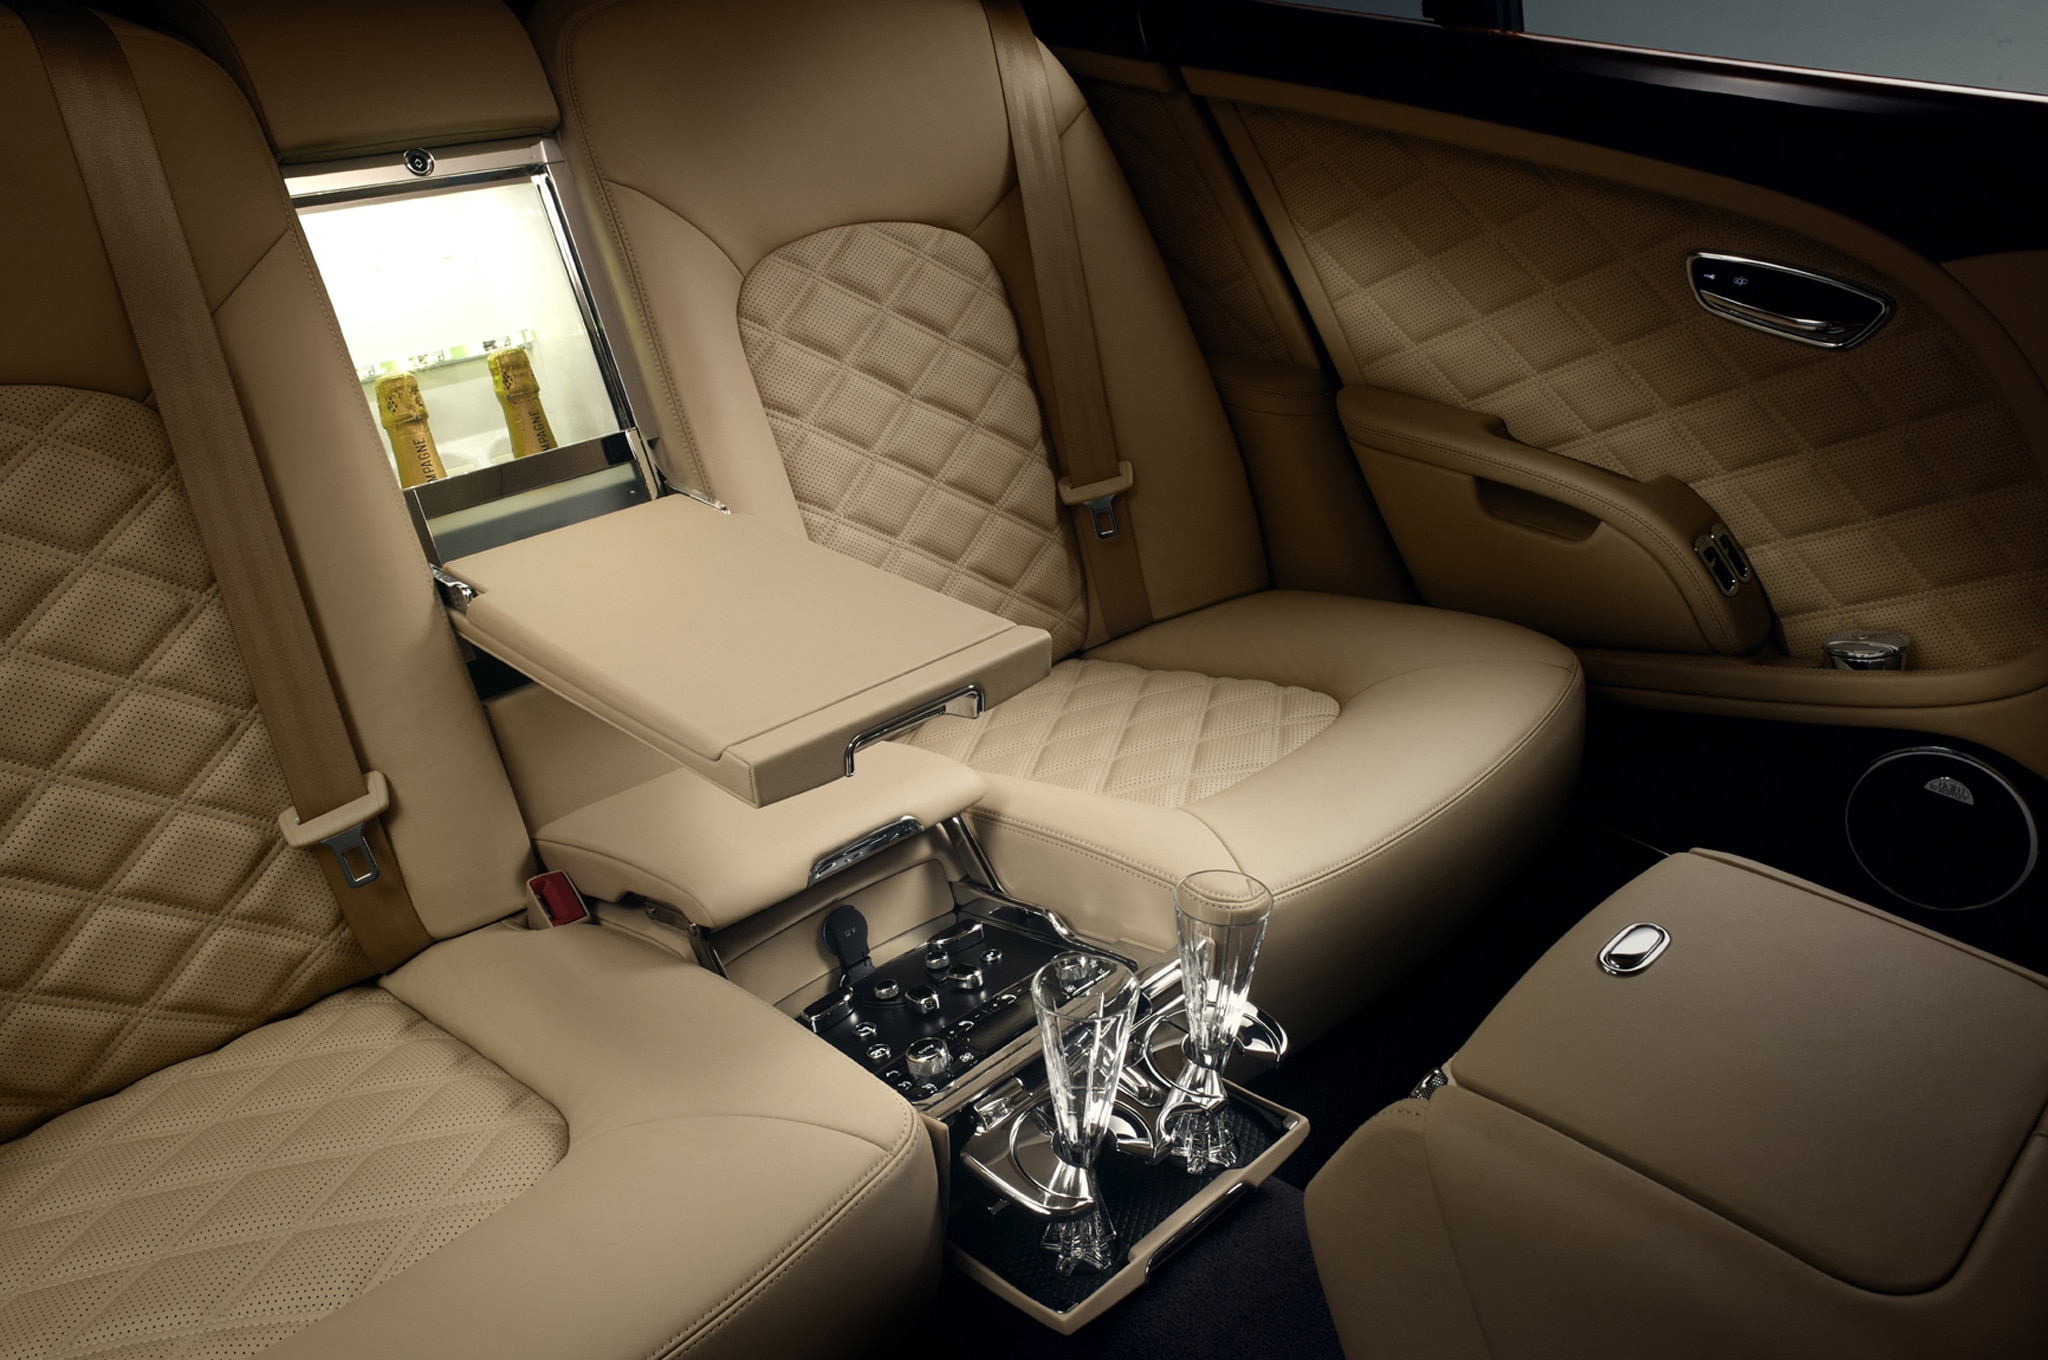 2013 bentley mulsanne executive images hd cars wallpaper 2014 bentley mulsanne adds pillows privacy curtains and wi fi 2013 bentley mulsanne 36106 vanachro images vanachro Images